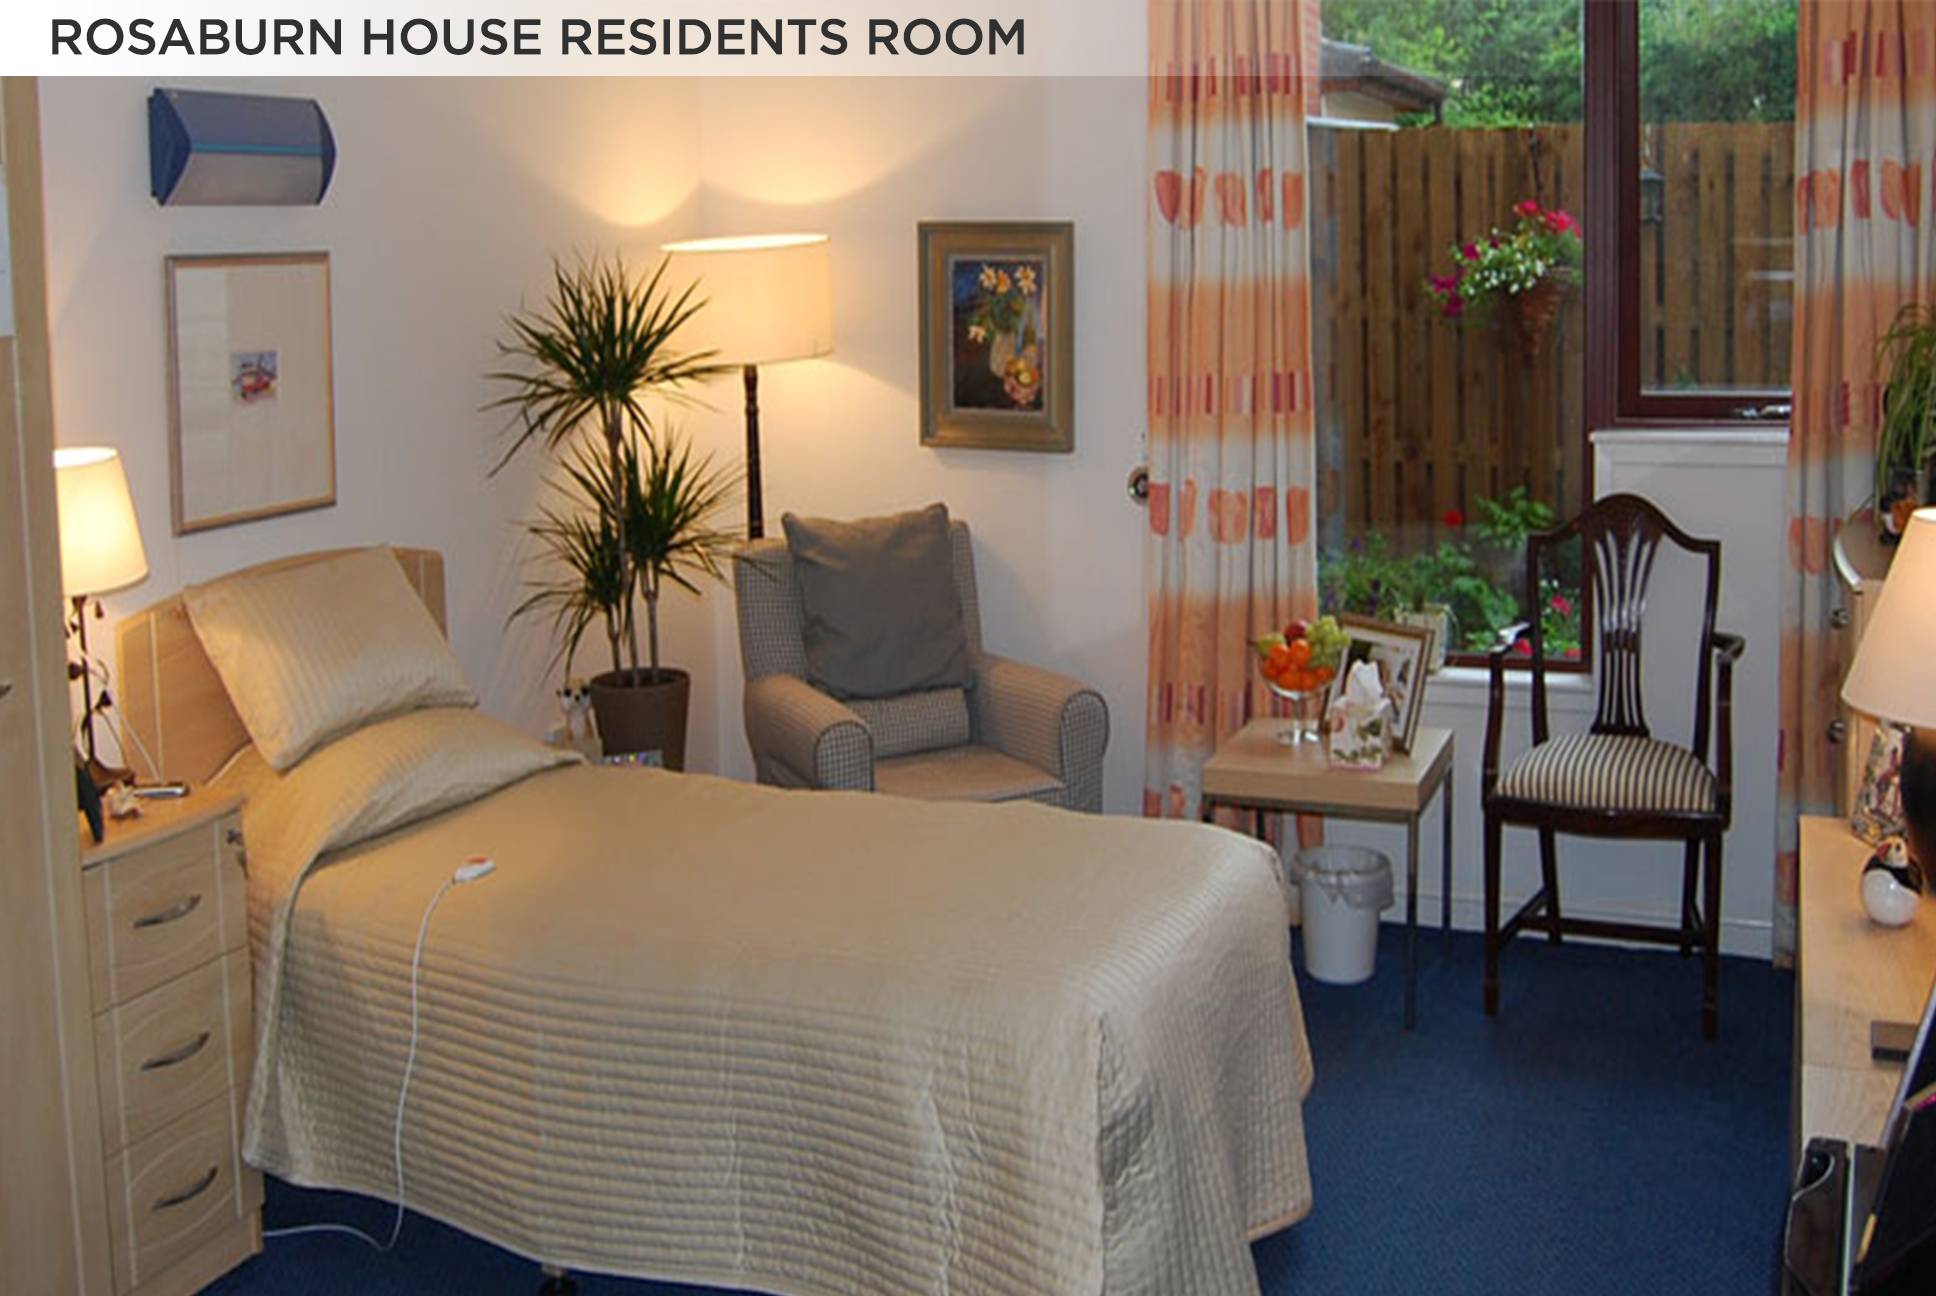 rosburn_house_BEDROOM_annotated